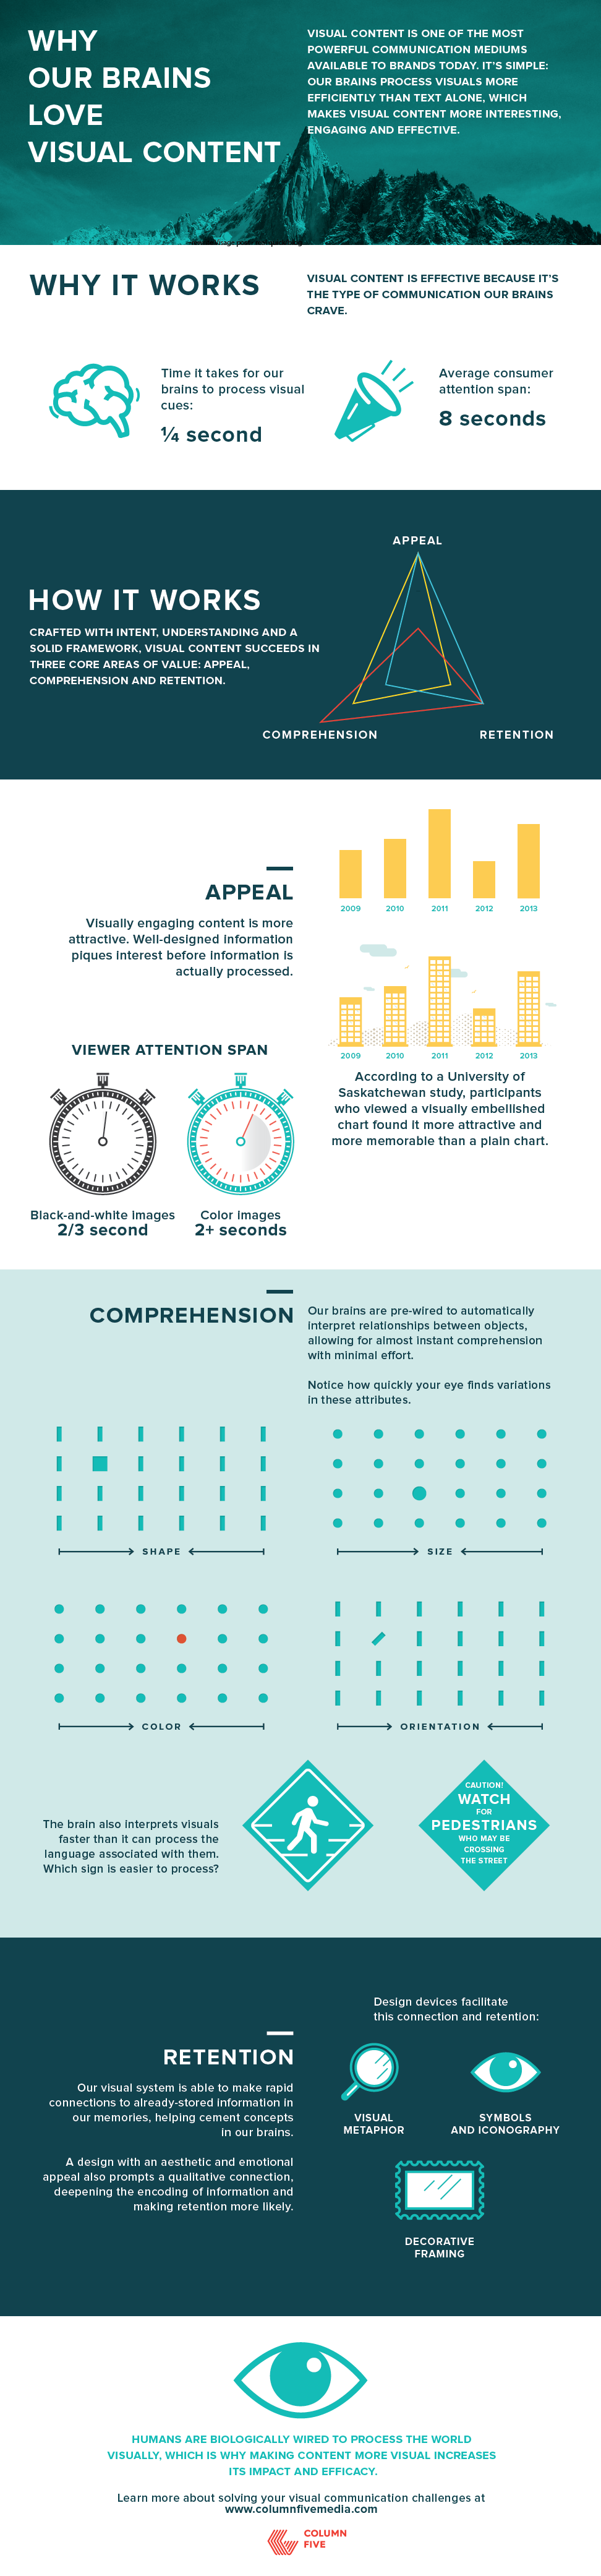 Why Our Brains Love Visual Content